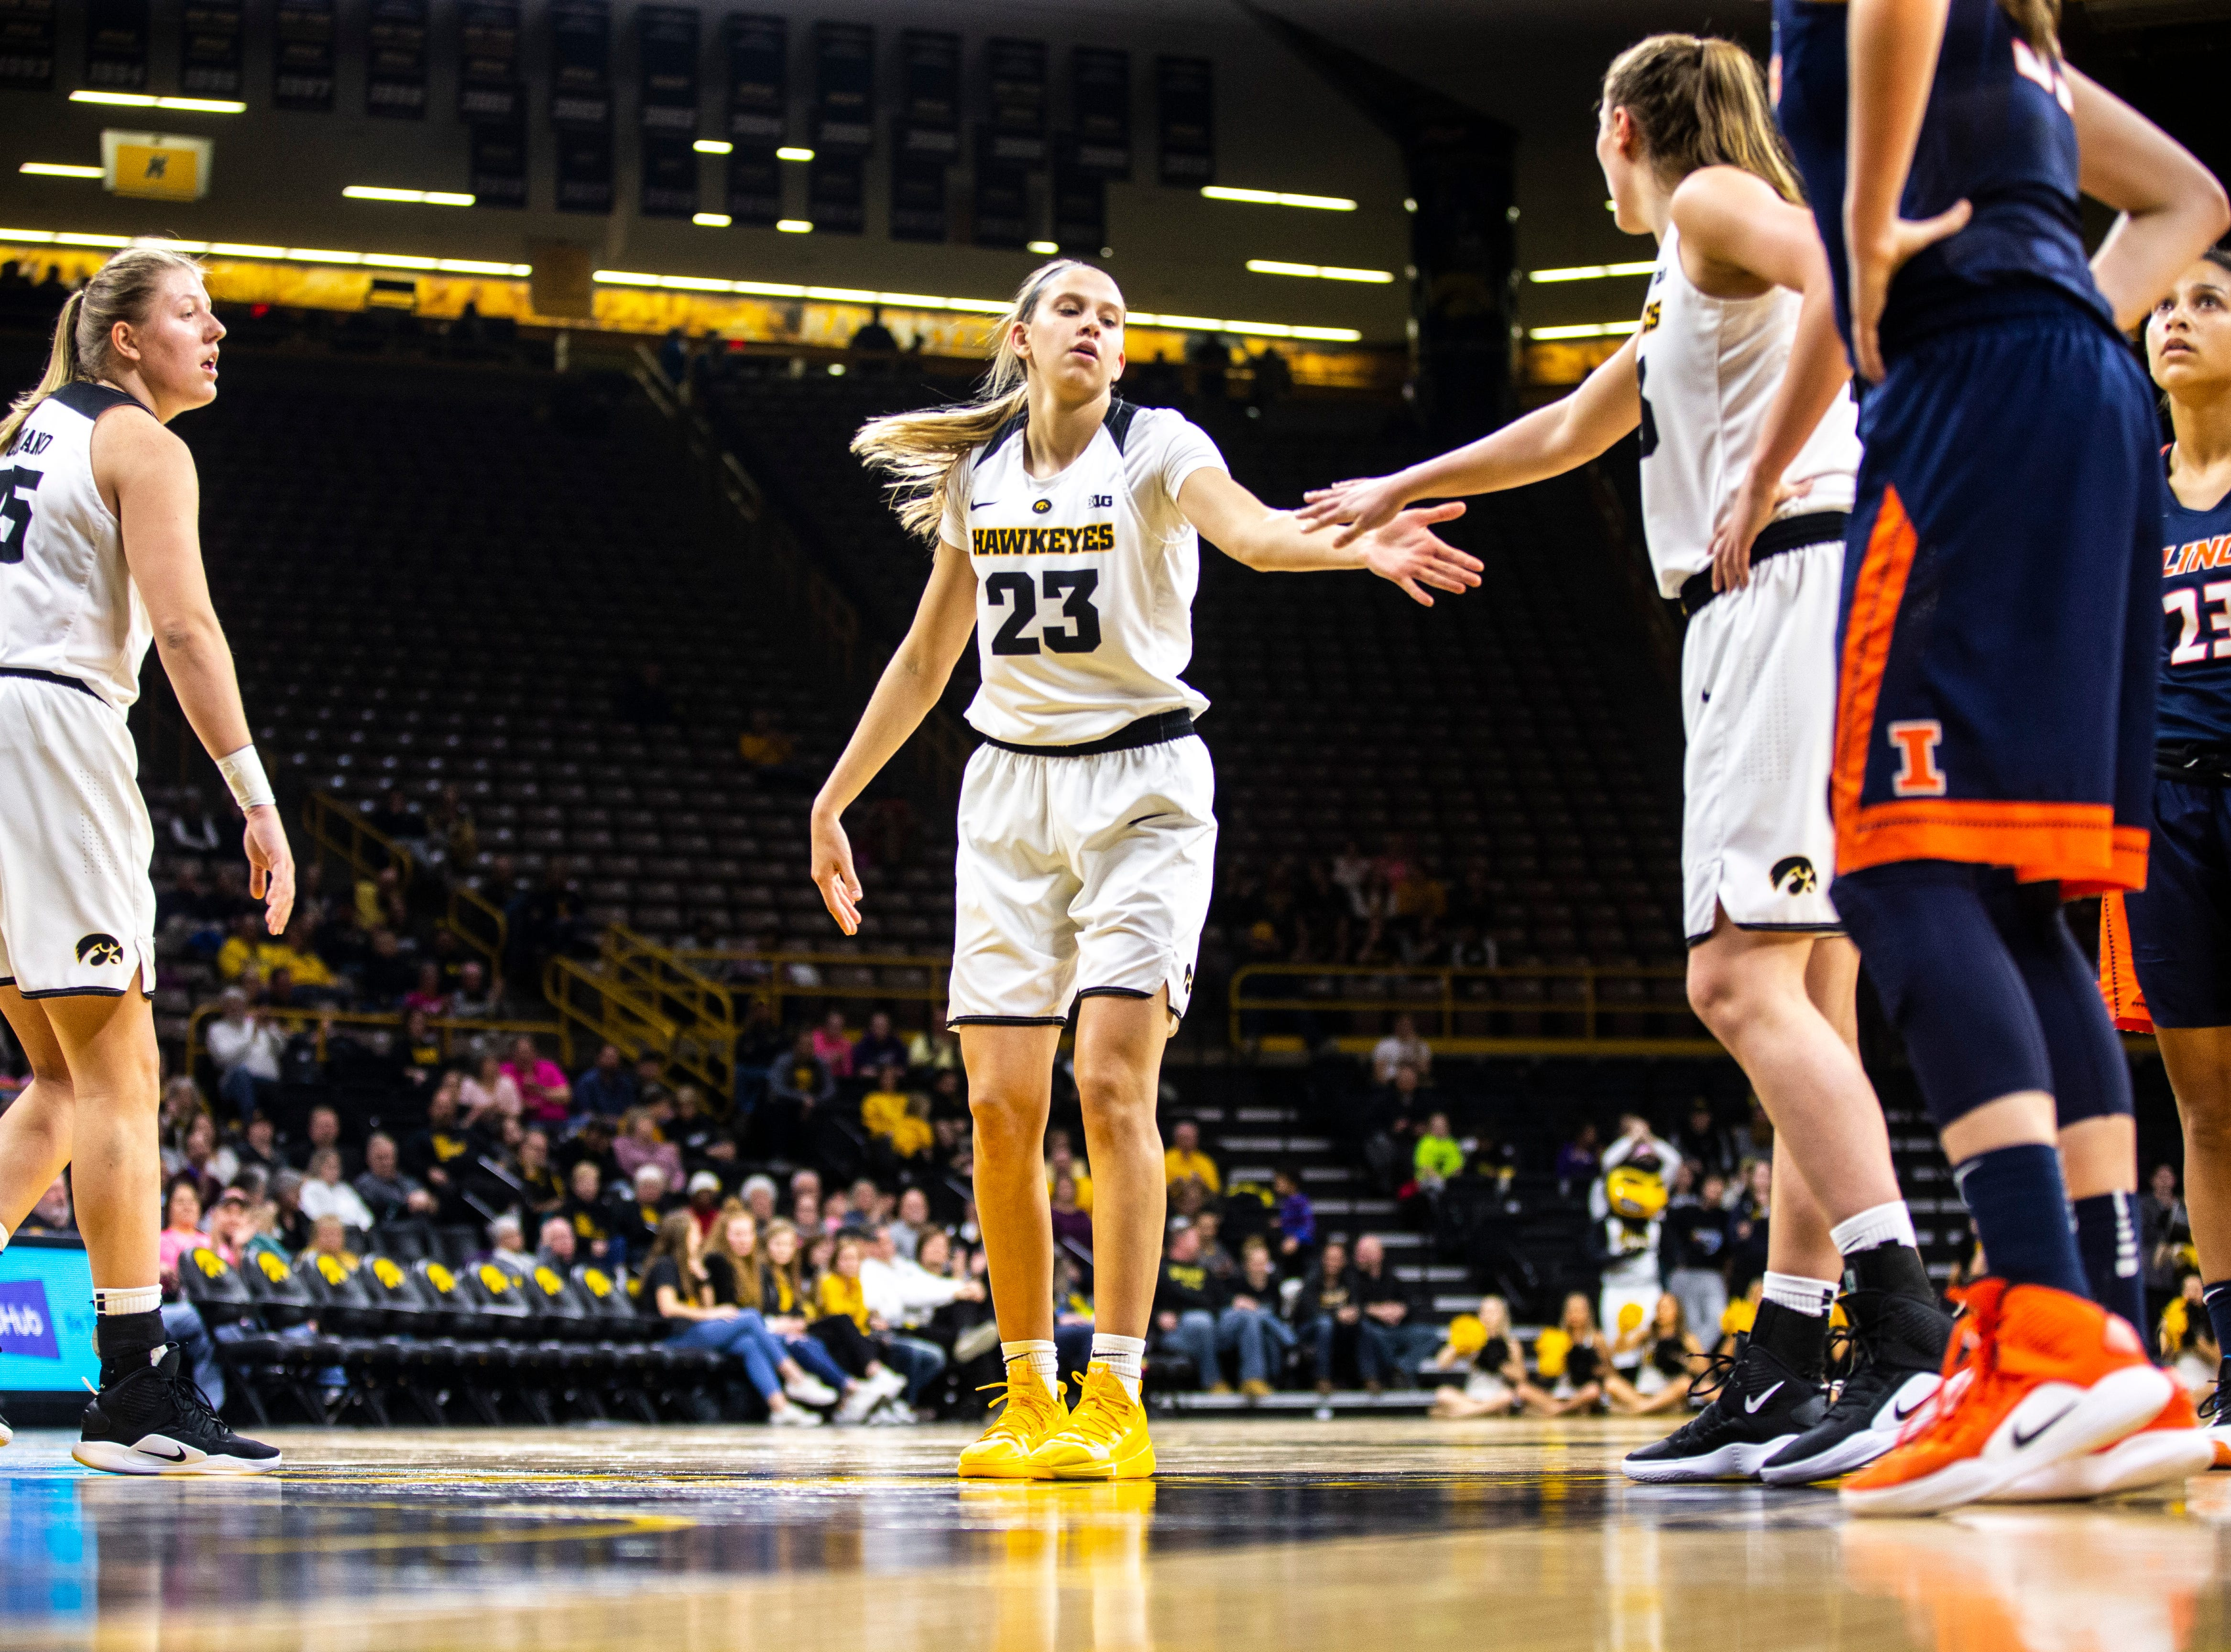 Iowa forward Logan Cook (23) gets a high five while shooting free throws during a NCAA Big Ten Conference women's basketball game on Thursday, Feb. 14, 2019 at Carver-Hawkeye Arena in Iowa City, Iowa.